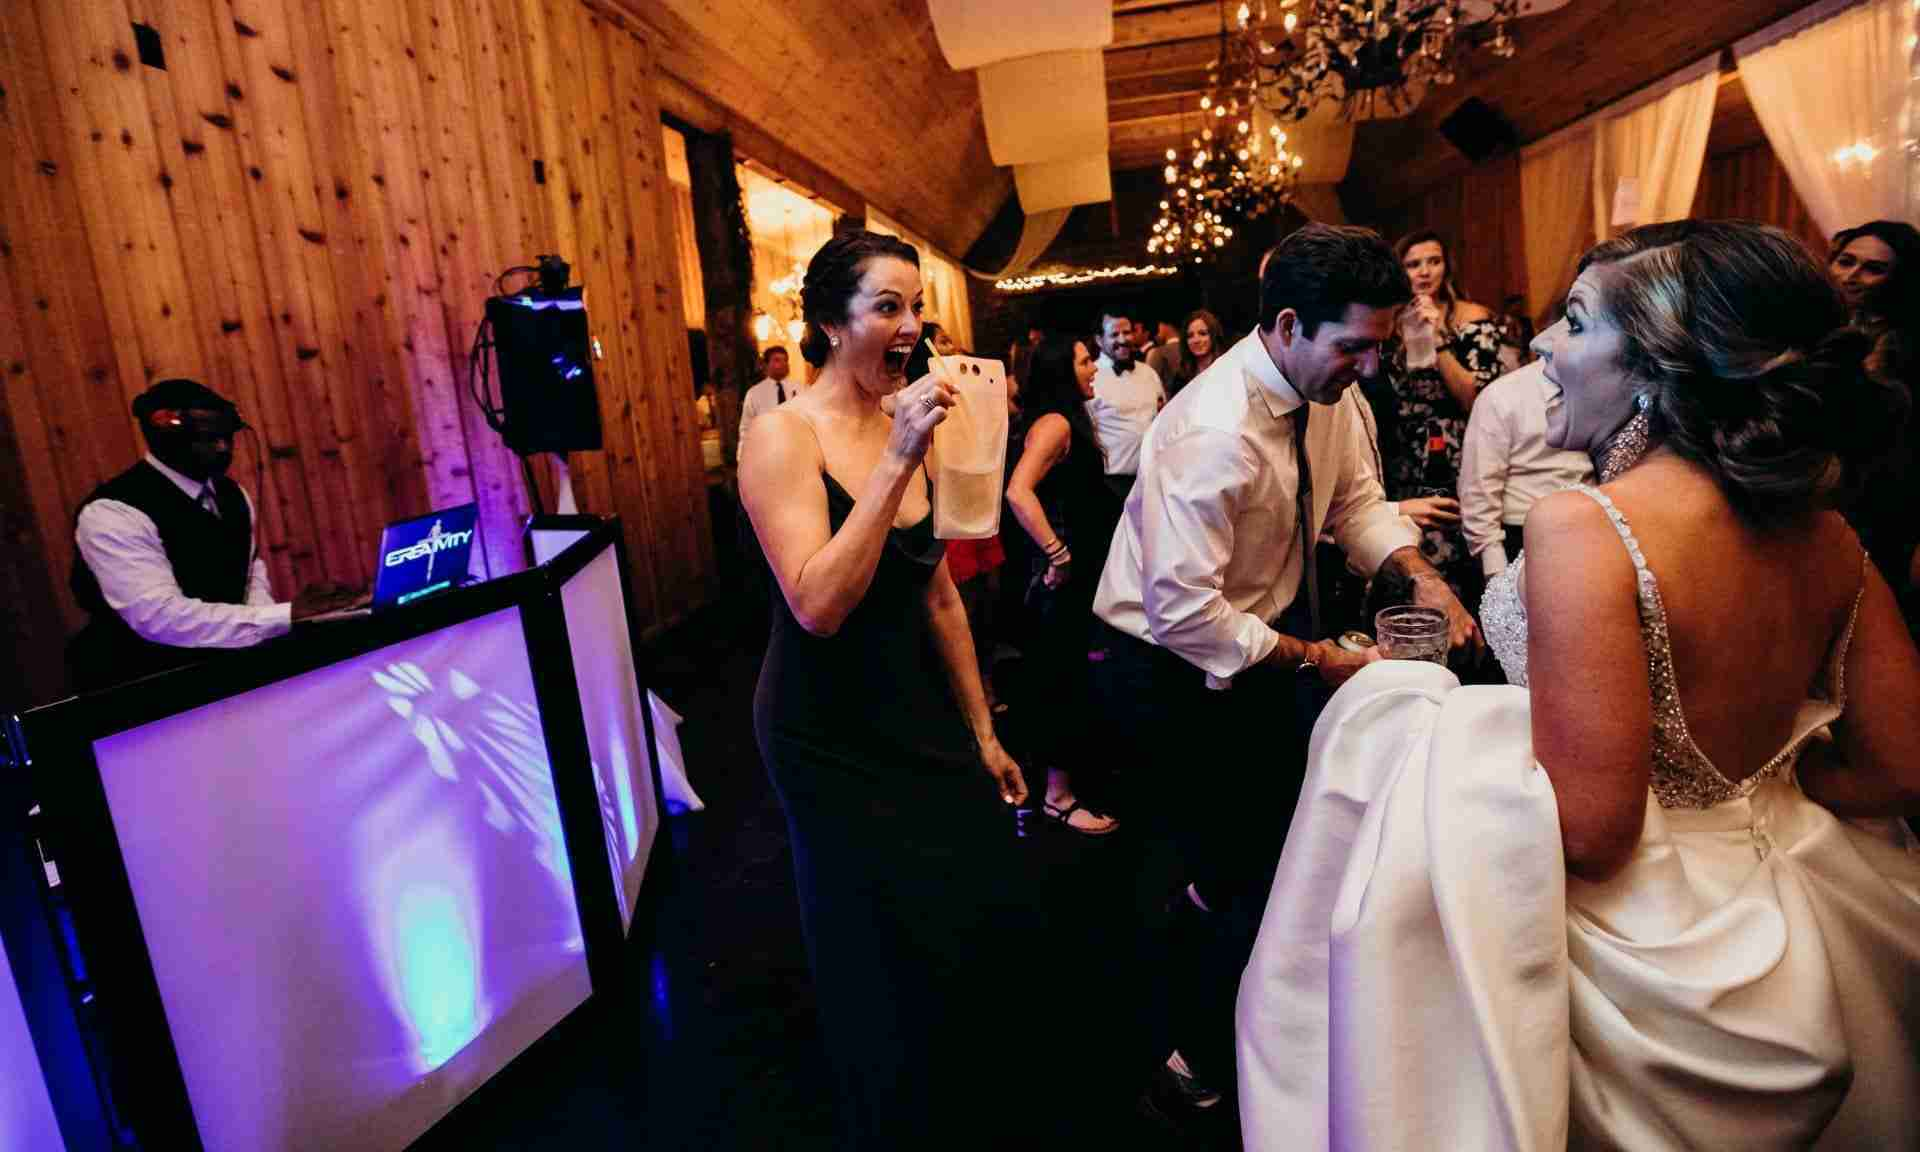 Professional DJ_DJ Creativity_Erin&Danny Wedding Celebration at Twickenham House_Jefferson, NC